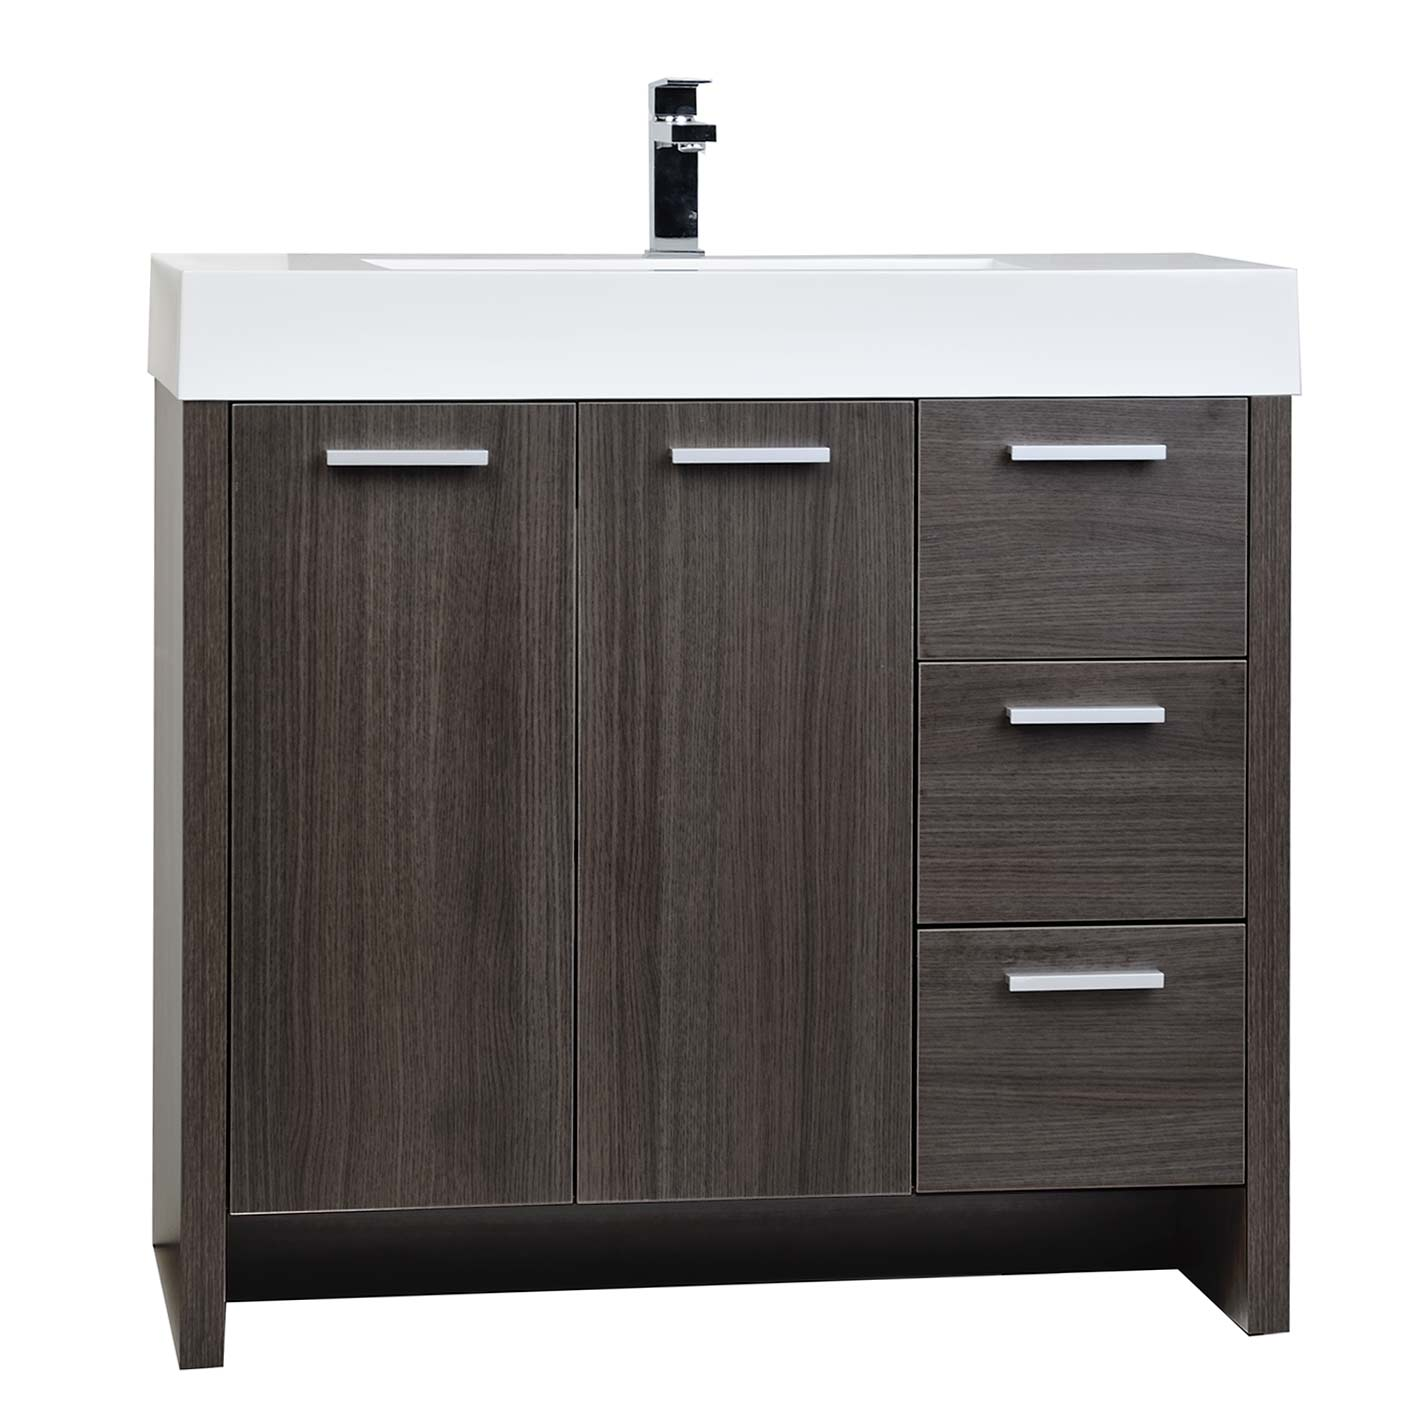 Buy 35 5 modern bathroom vanity grey oak finish tn ly900 for Bathroom vanities